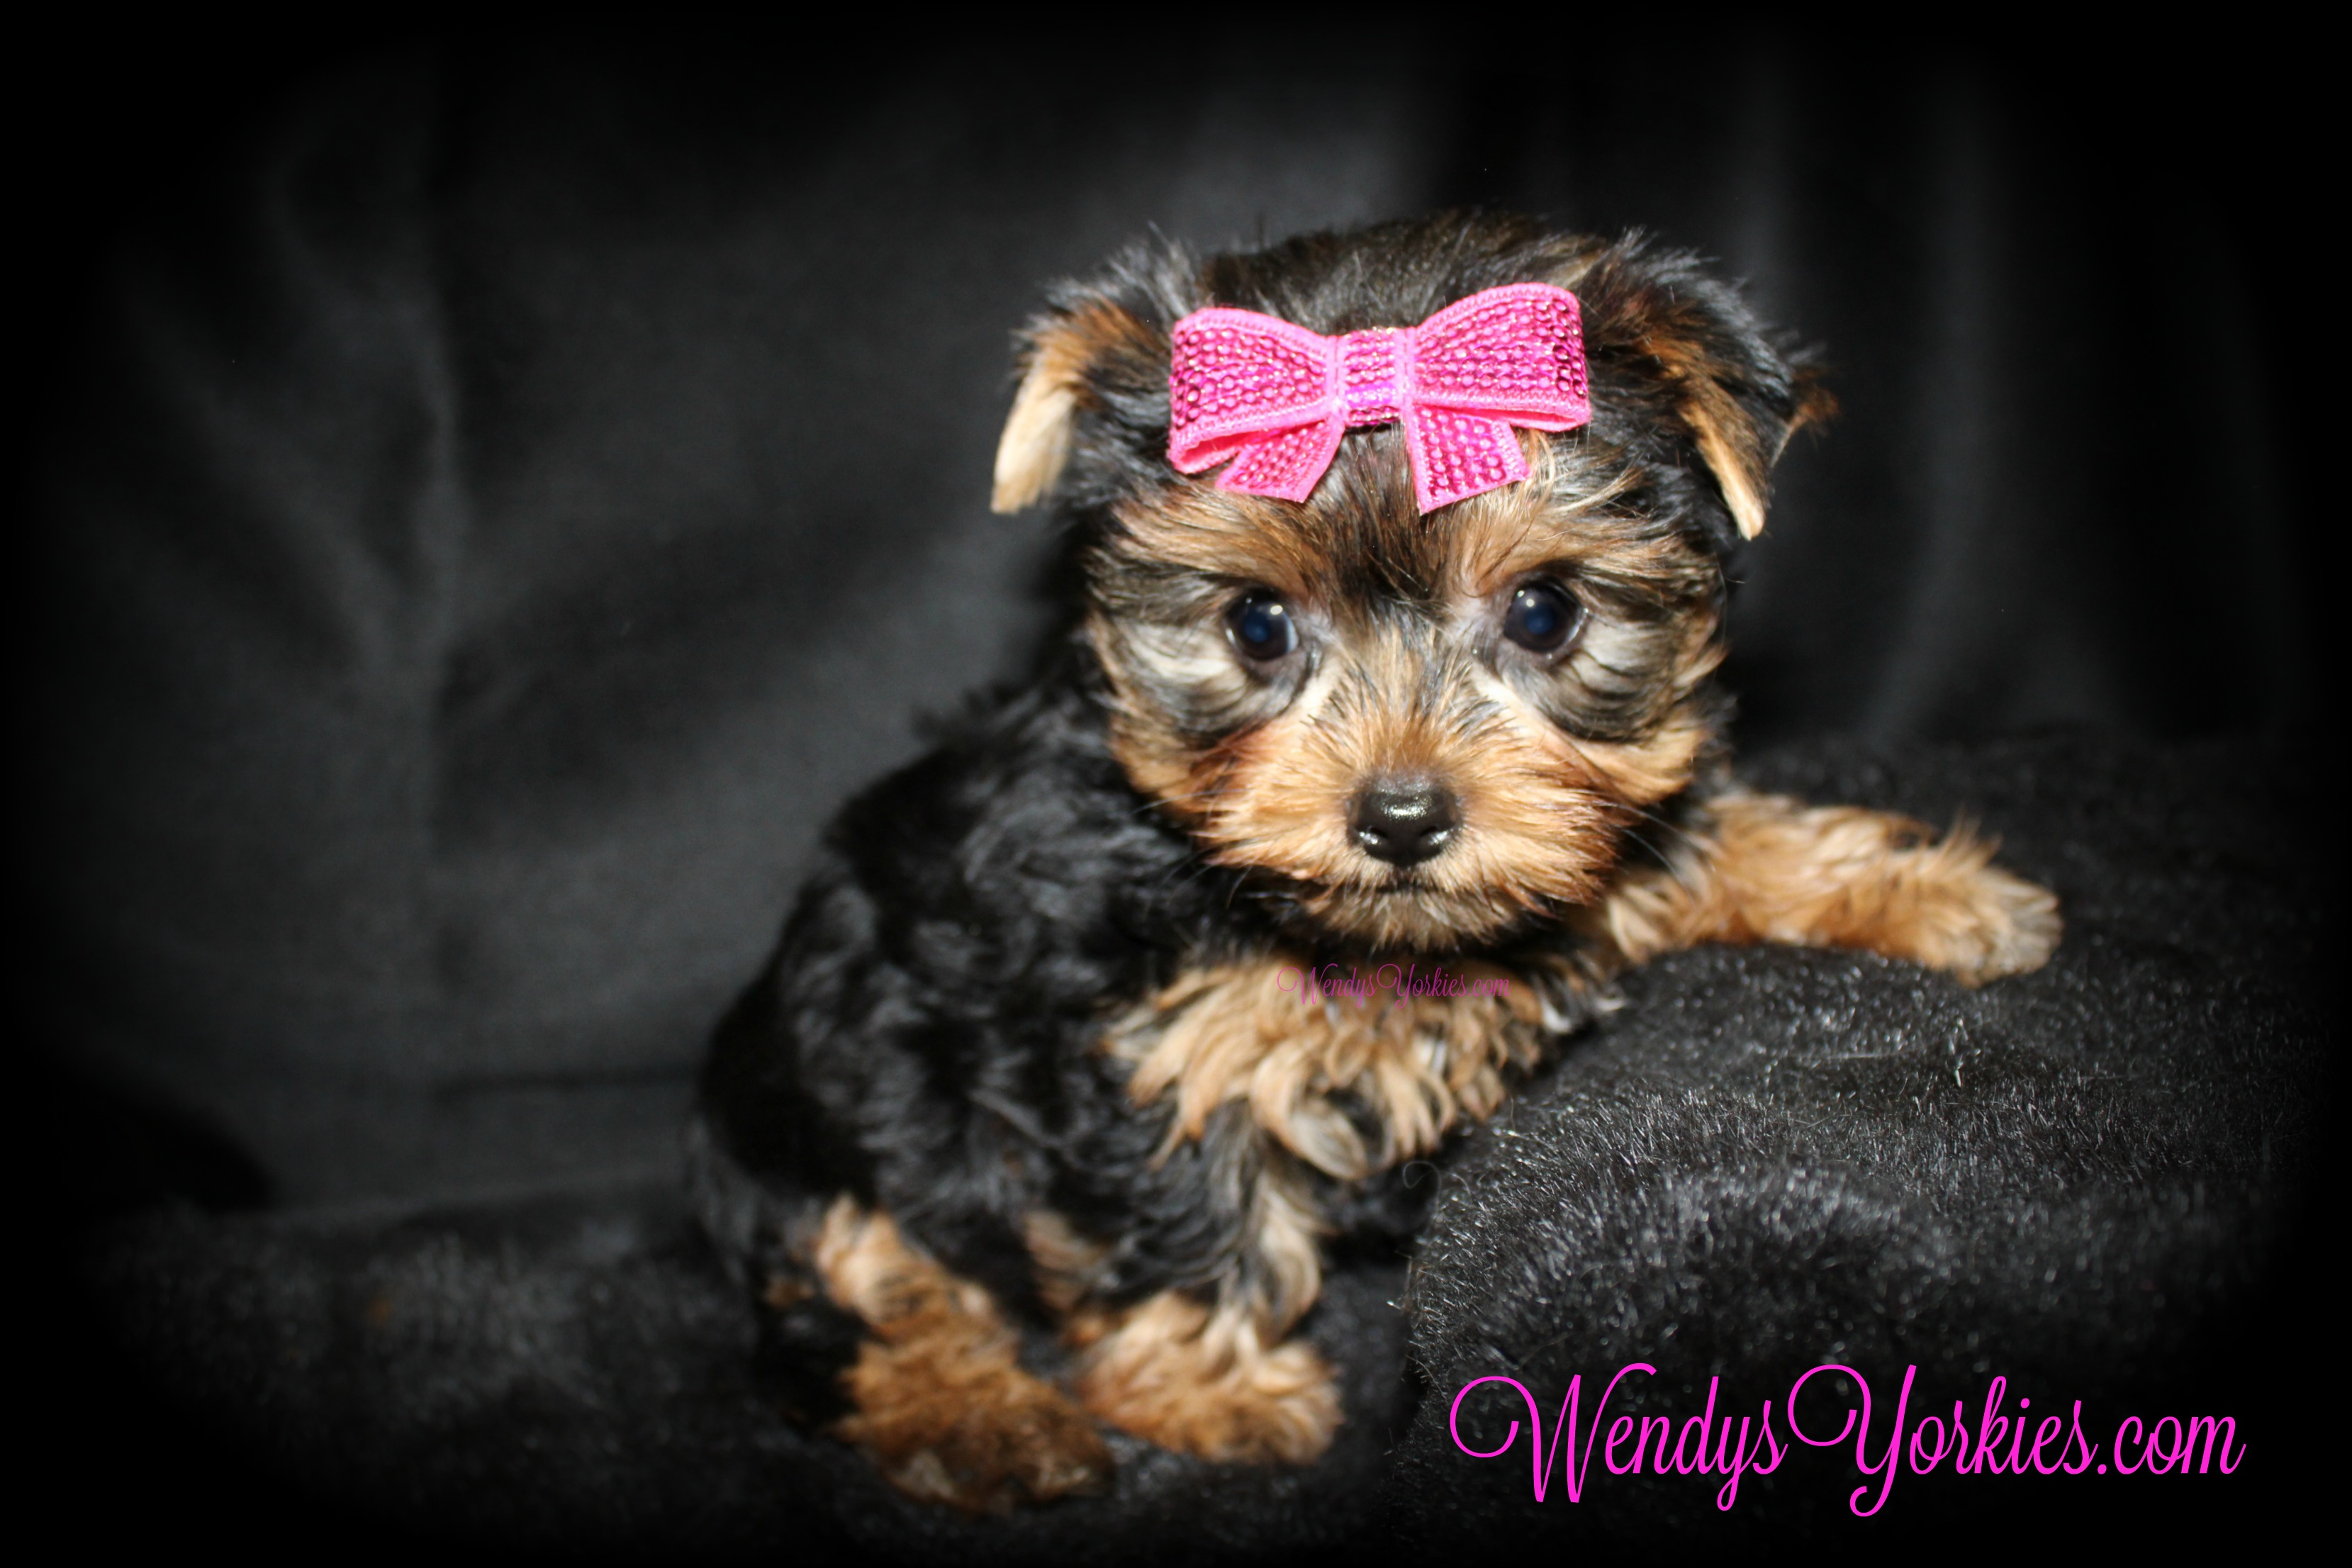 Female Toy size Yorkie puppies for sale, WendysYorkies.com, Grace f3